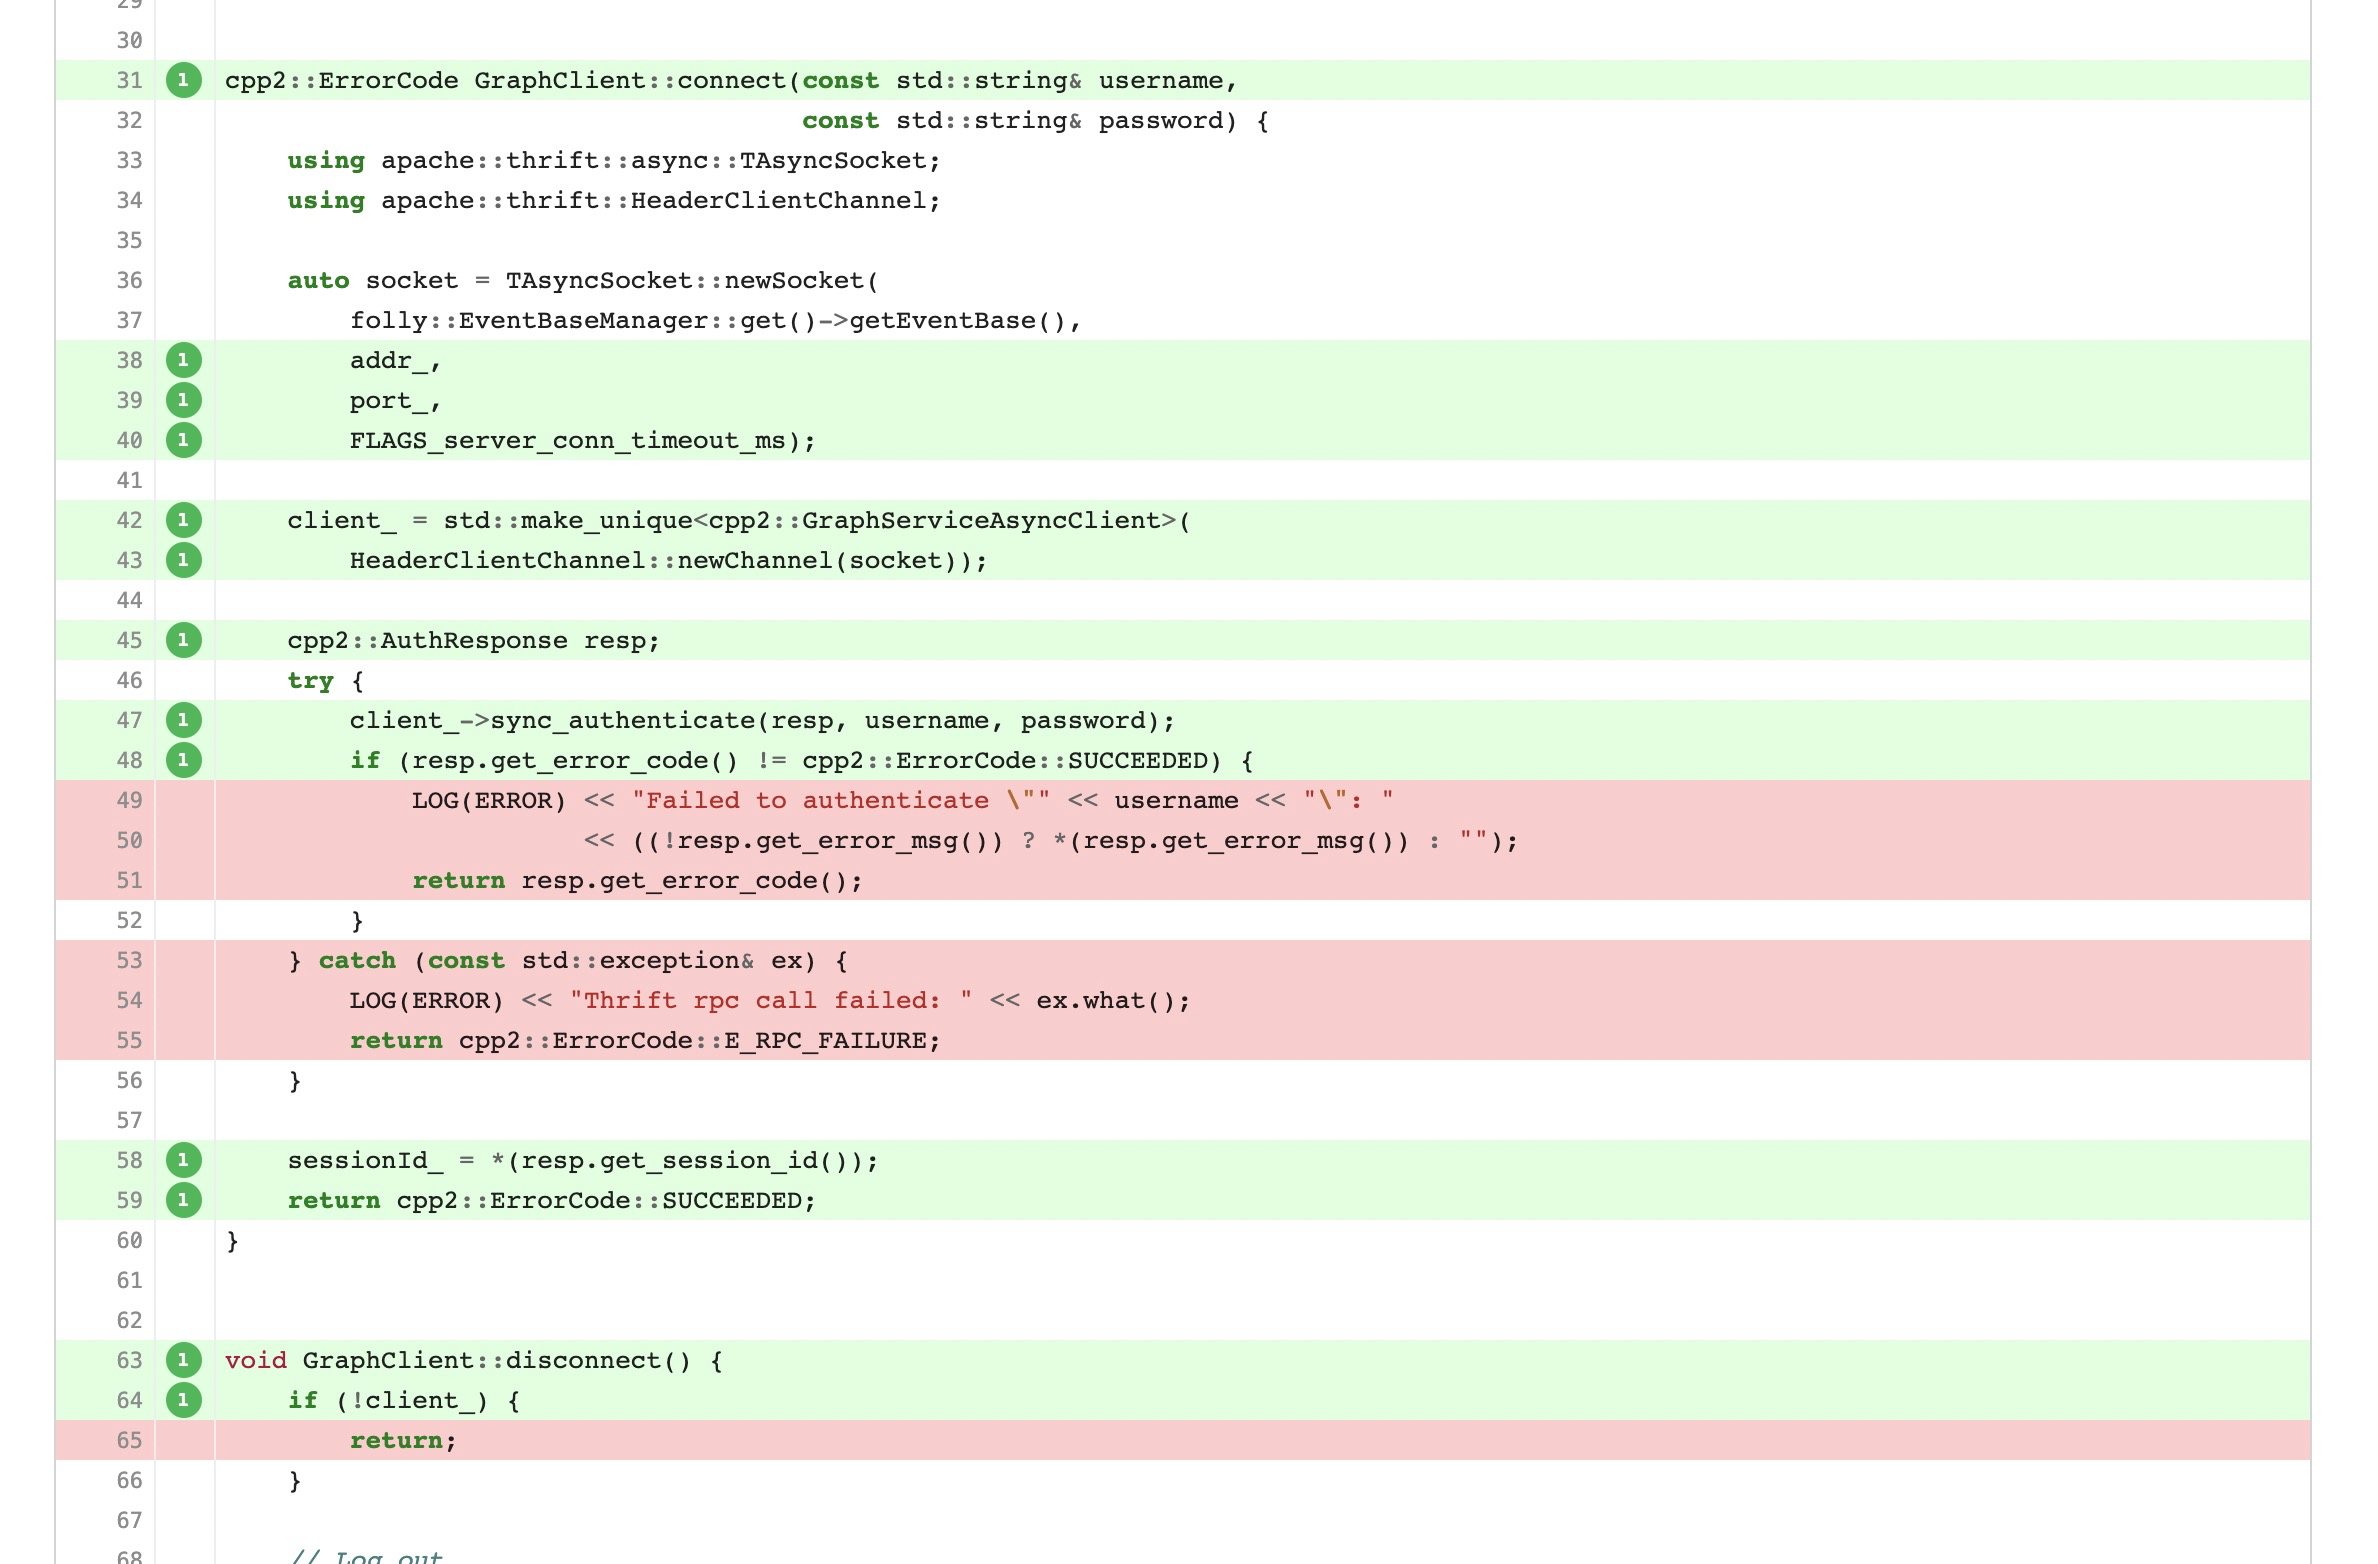 test coverage results by code lines